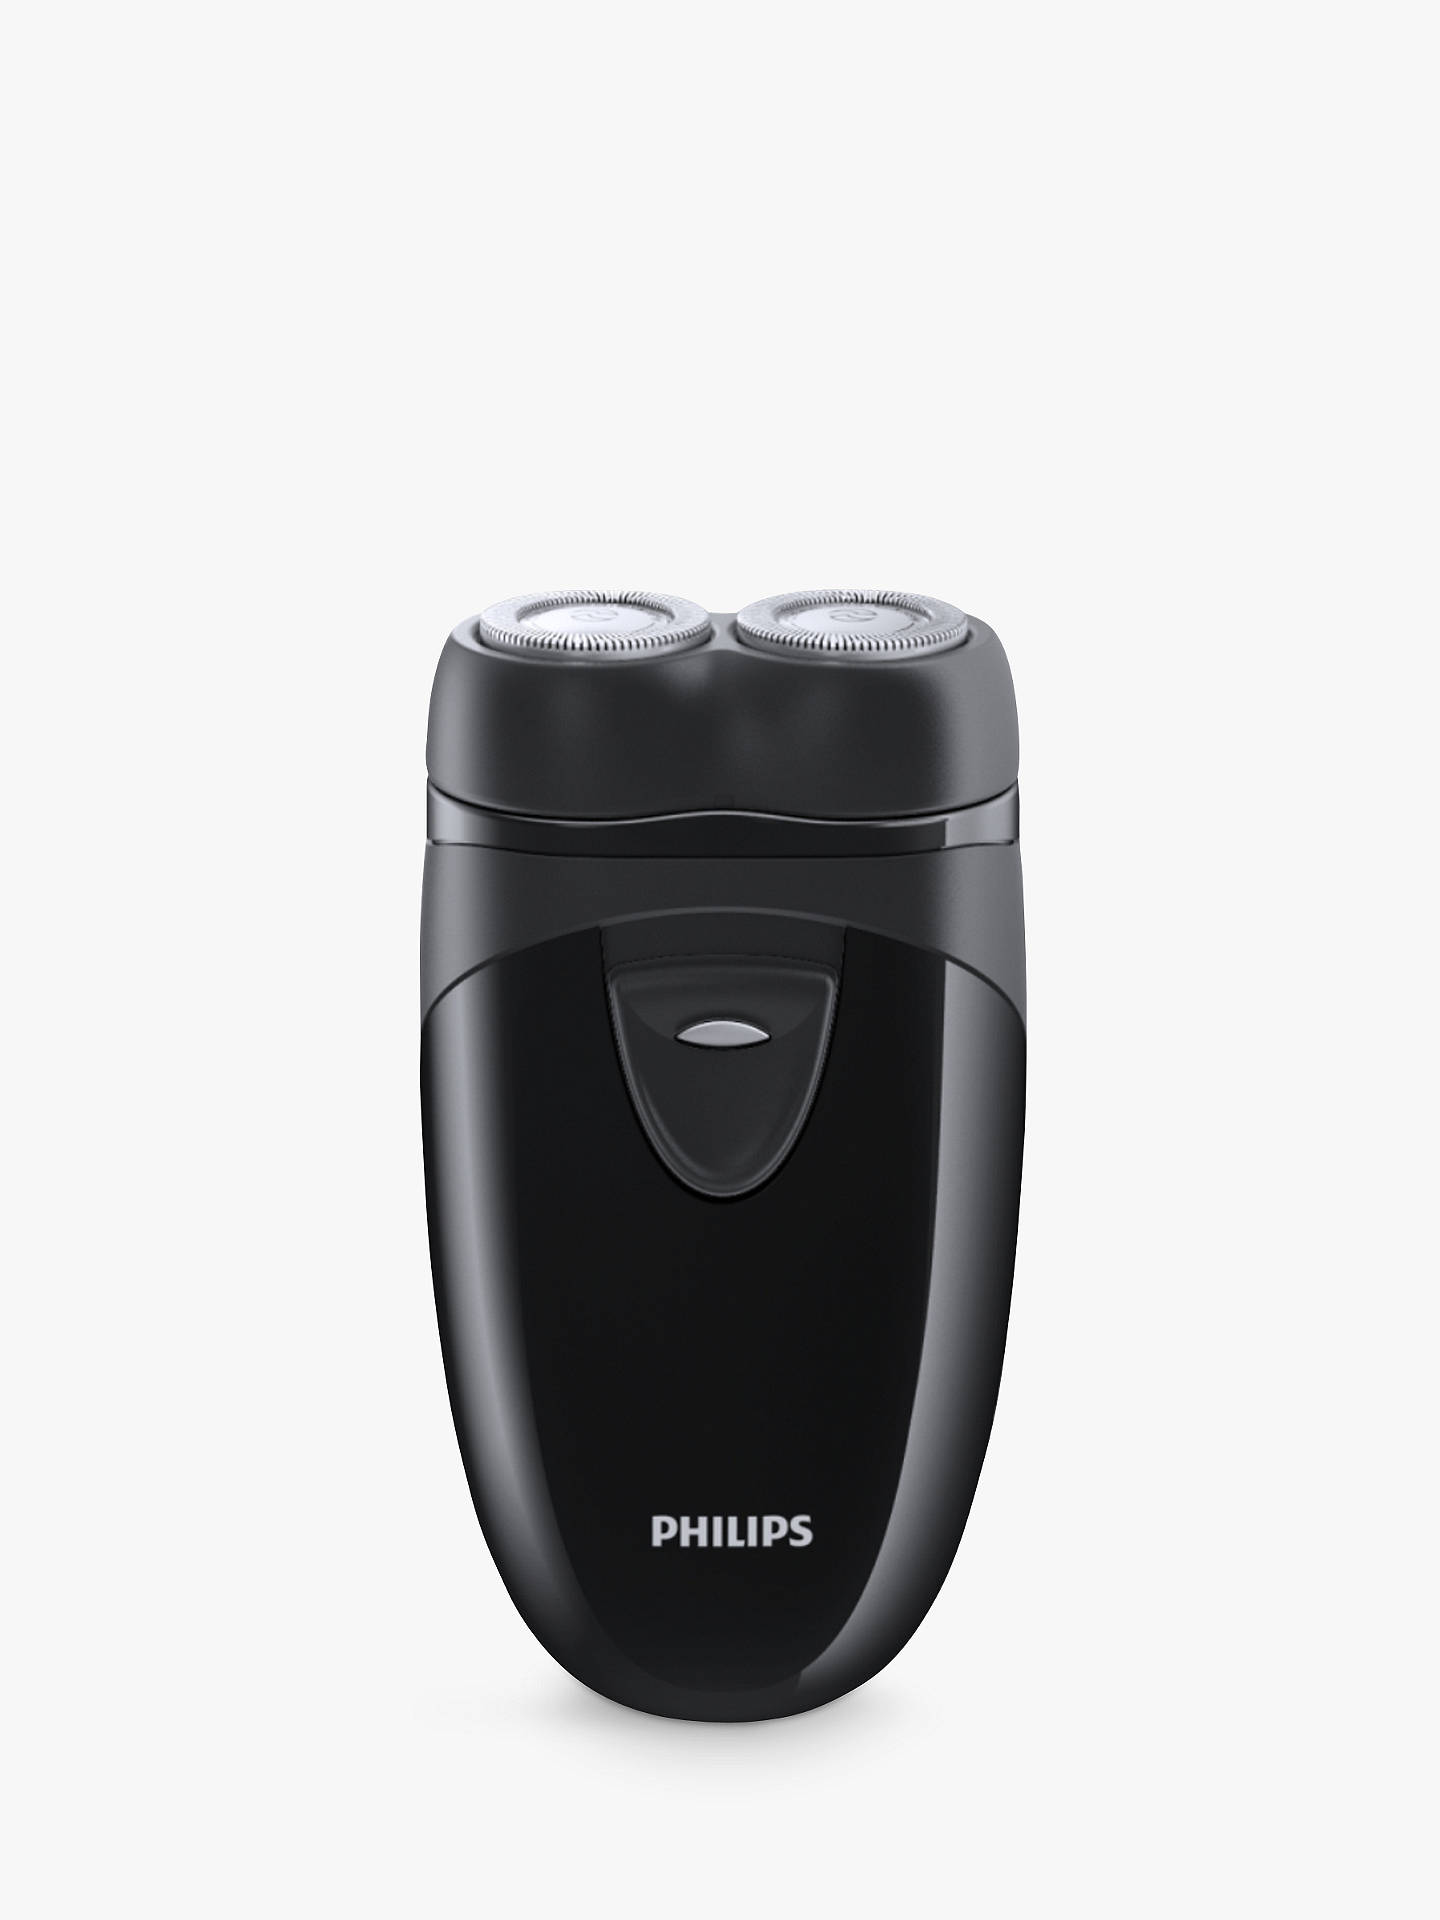 BuyPhilips PQ203/17 Mobile Shaver Online at johnlewis.com